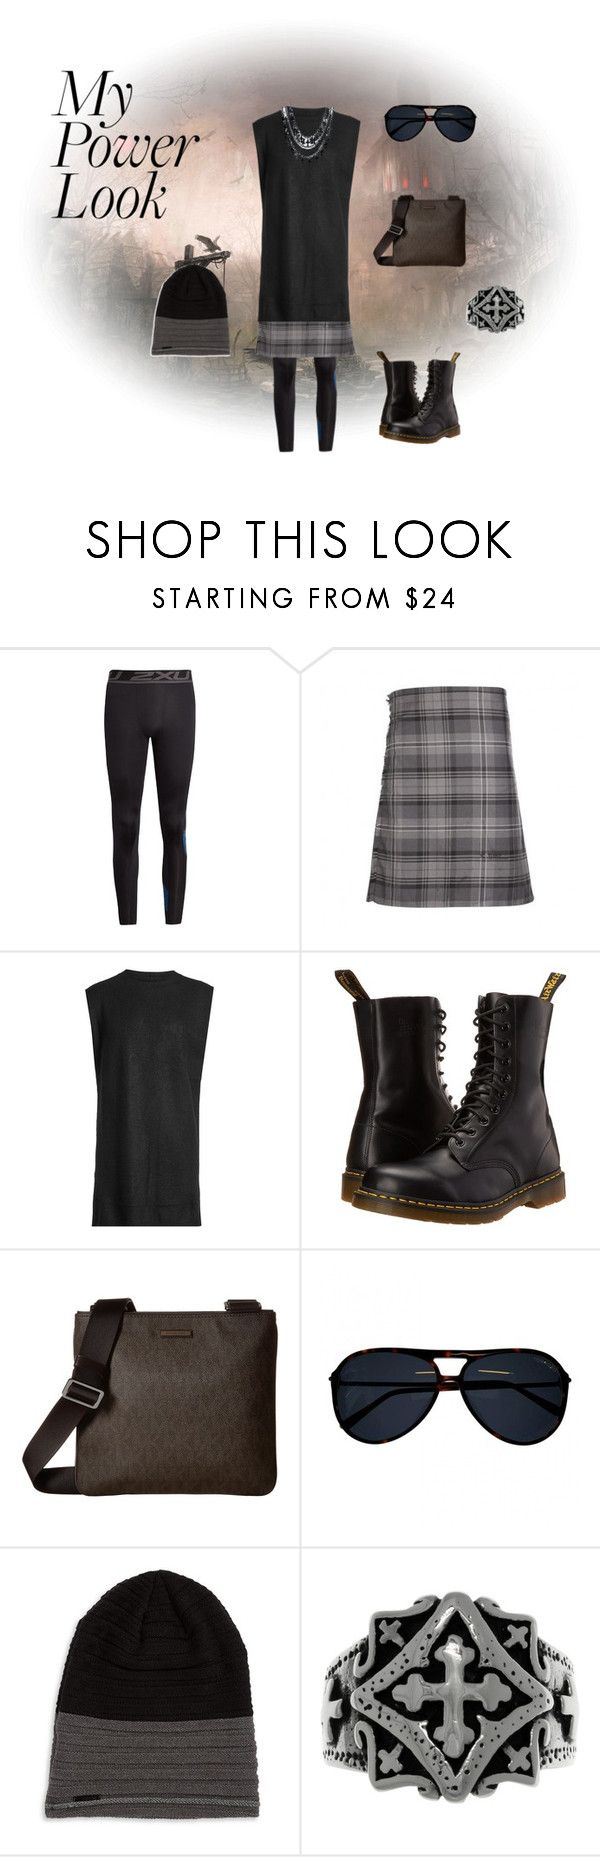 """Power Look Men's"" by jonny-kratavil-boquet ❤ liked on Polyvore featuring 2XU, Rick Owens, Dr. Martens, Michael Kors, Tom Ford, Calvin Klein and Carolina Glamour Collection"